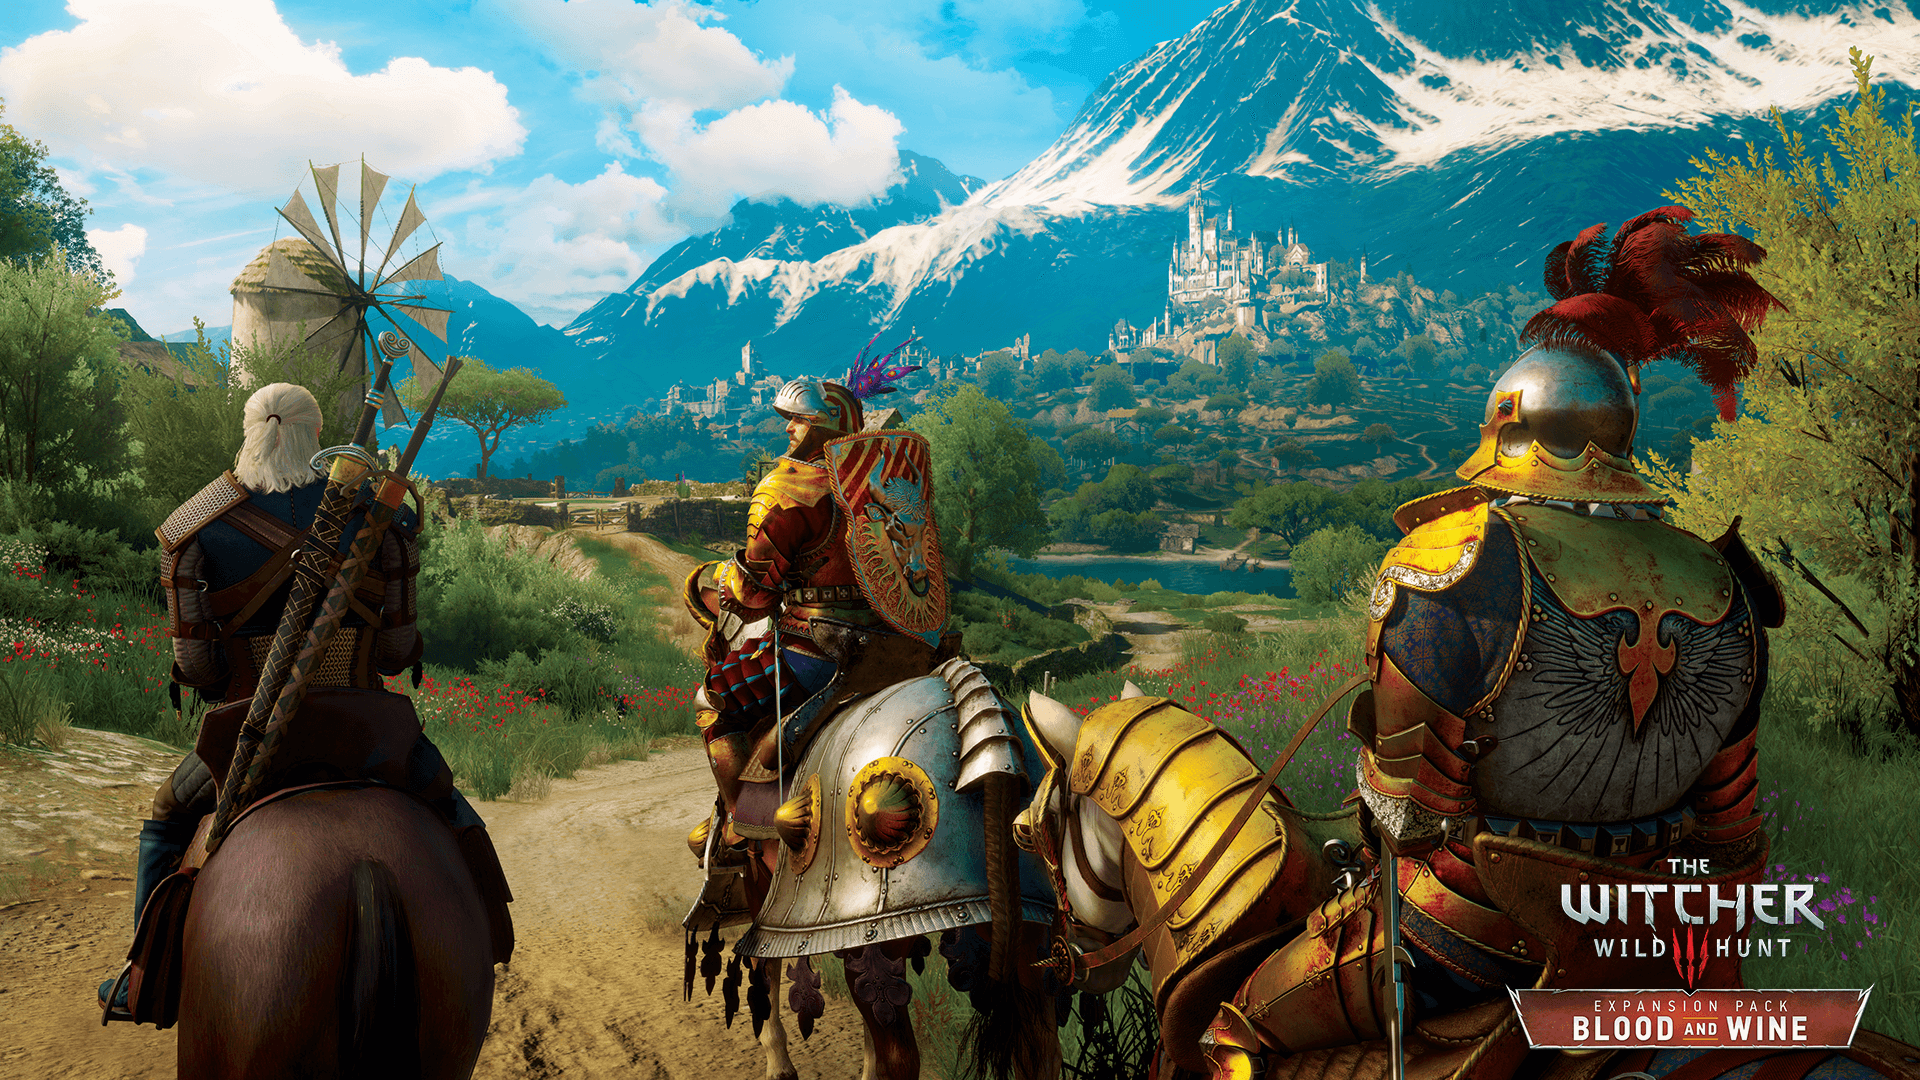 nws_The_Witcher_3_Wild_Hunt_Blood_and_Wine_Toussaint_is_a_beautiful_place_RGB_EN